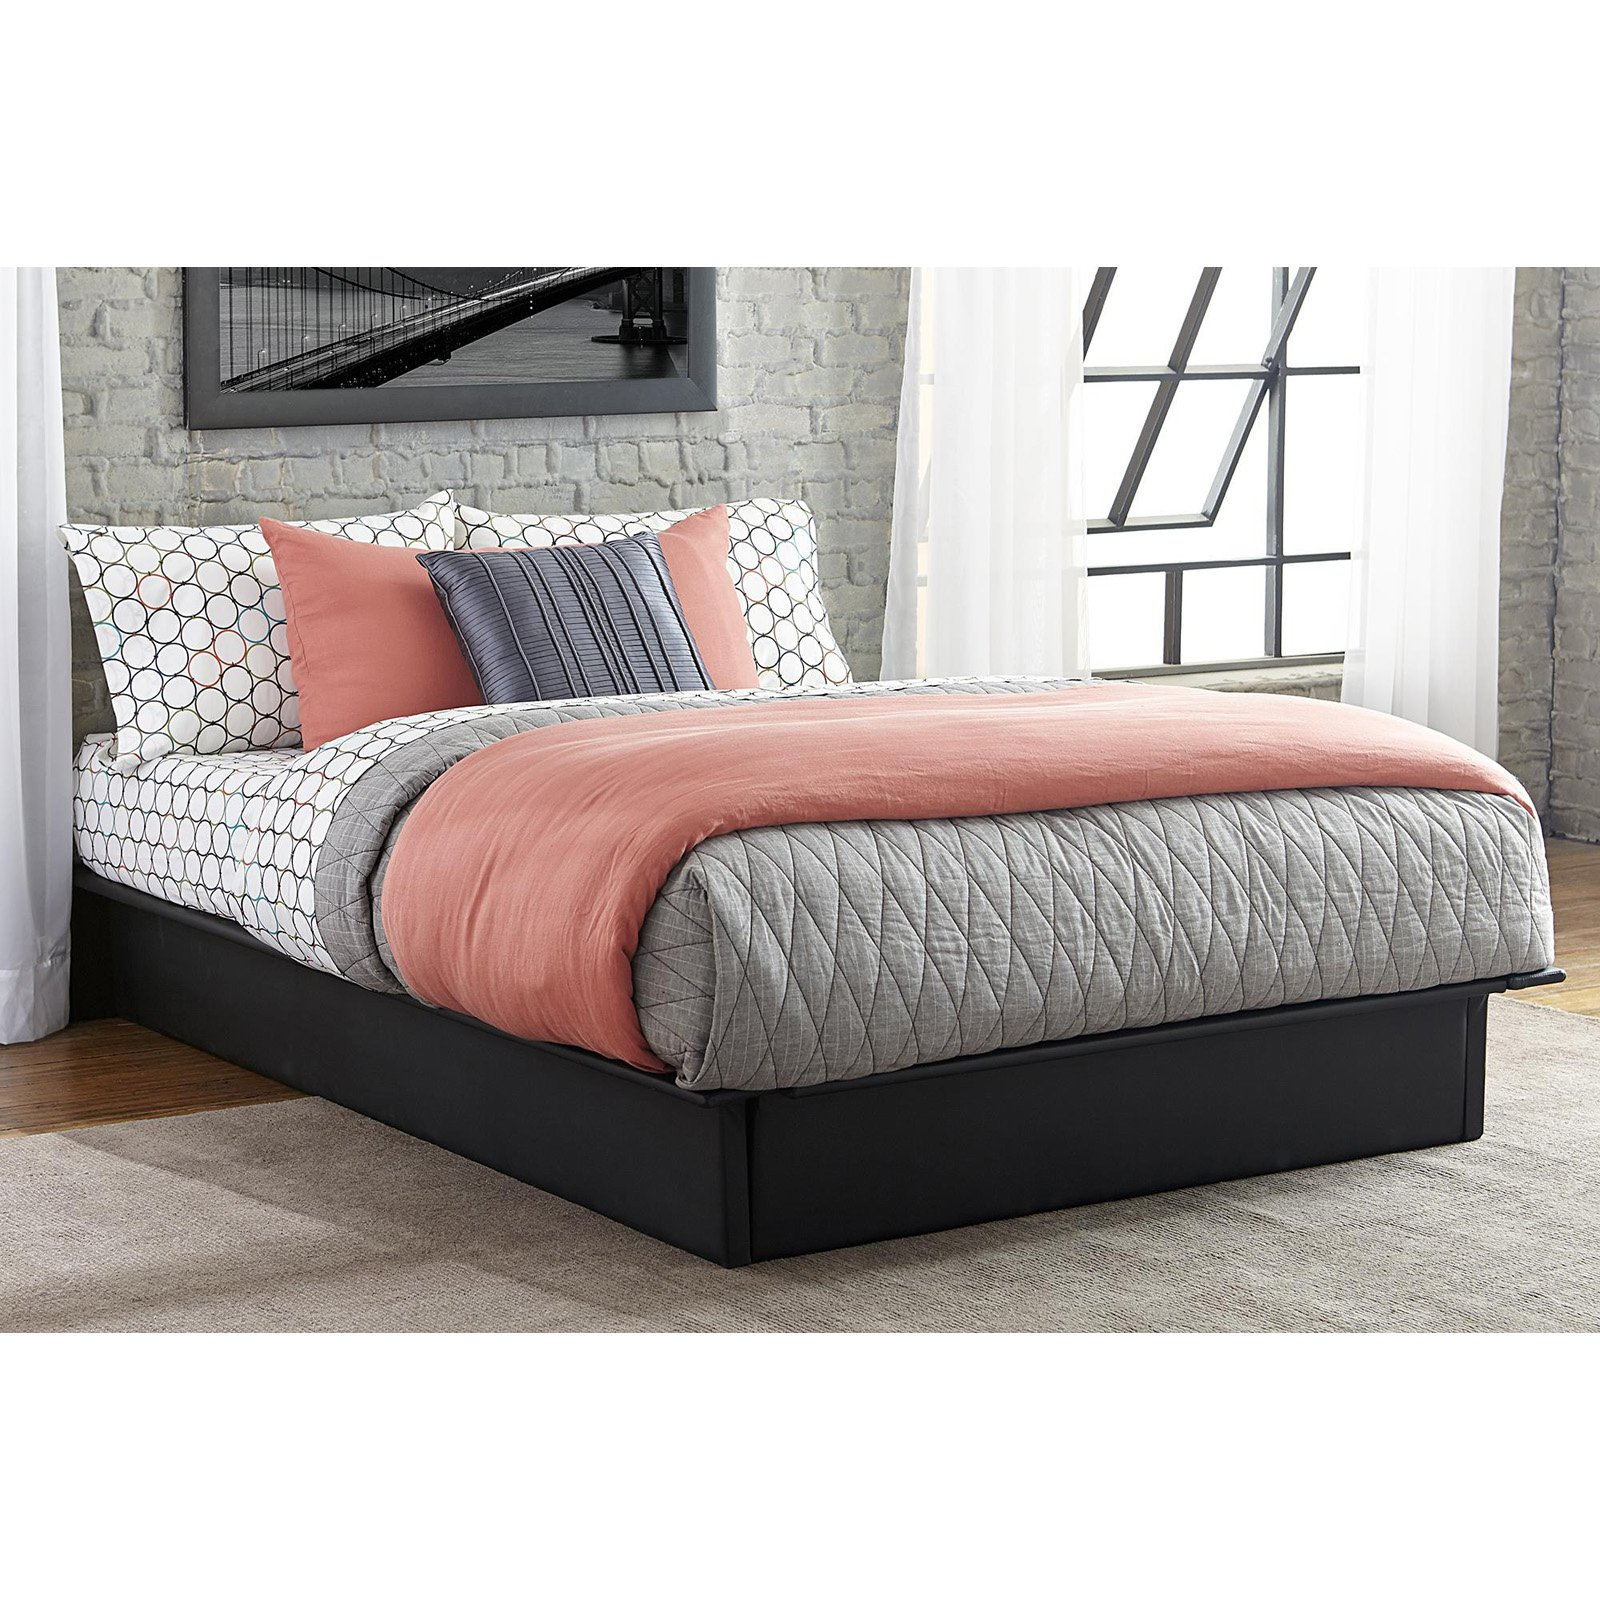 Maven Upholstered Platform Bed  Multiple Sizes and Colors   Walmart com. Maven Upholstered Platform Bed  Multiple Sizes and Colors